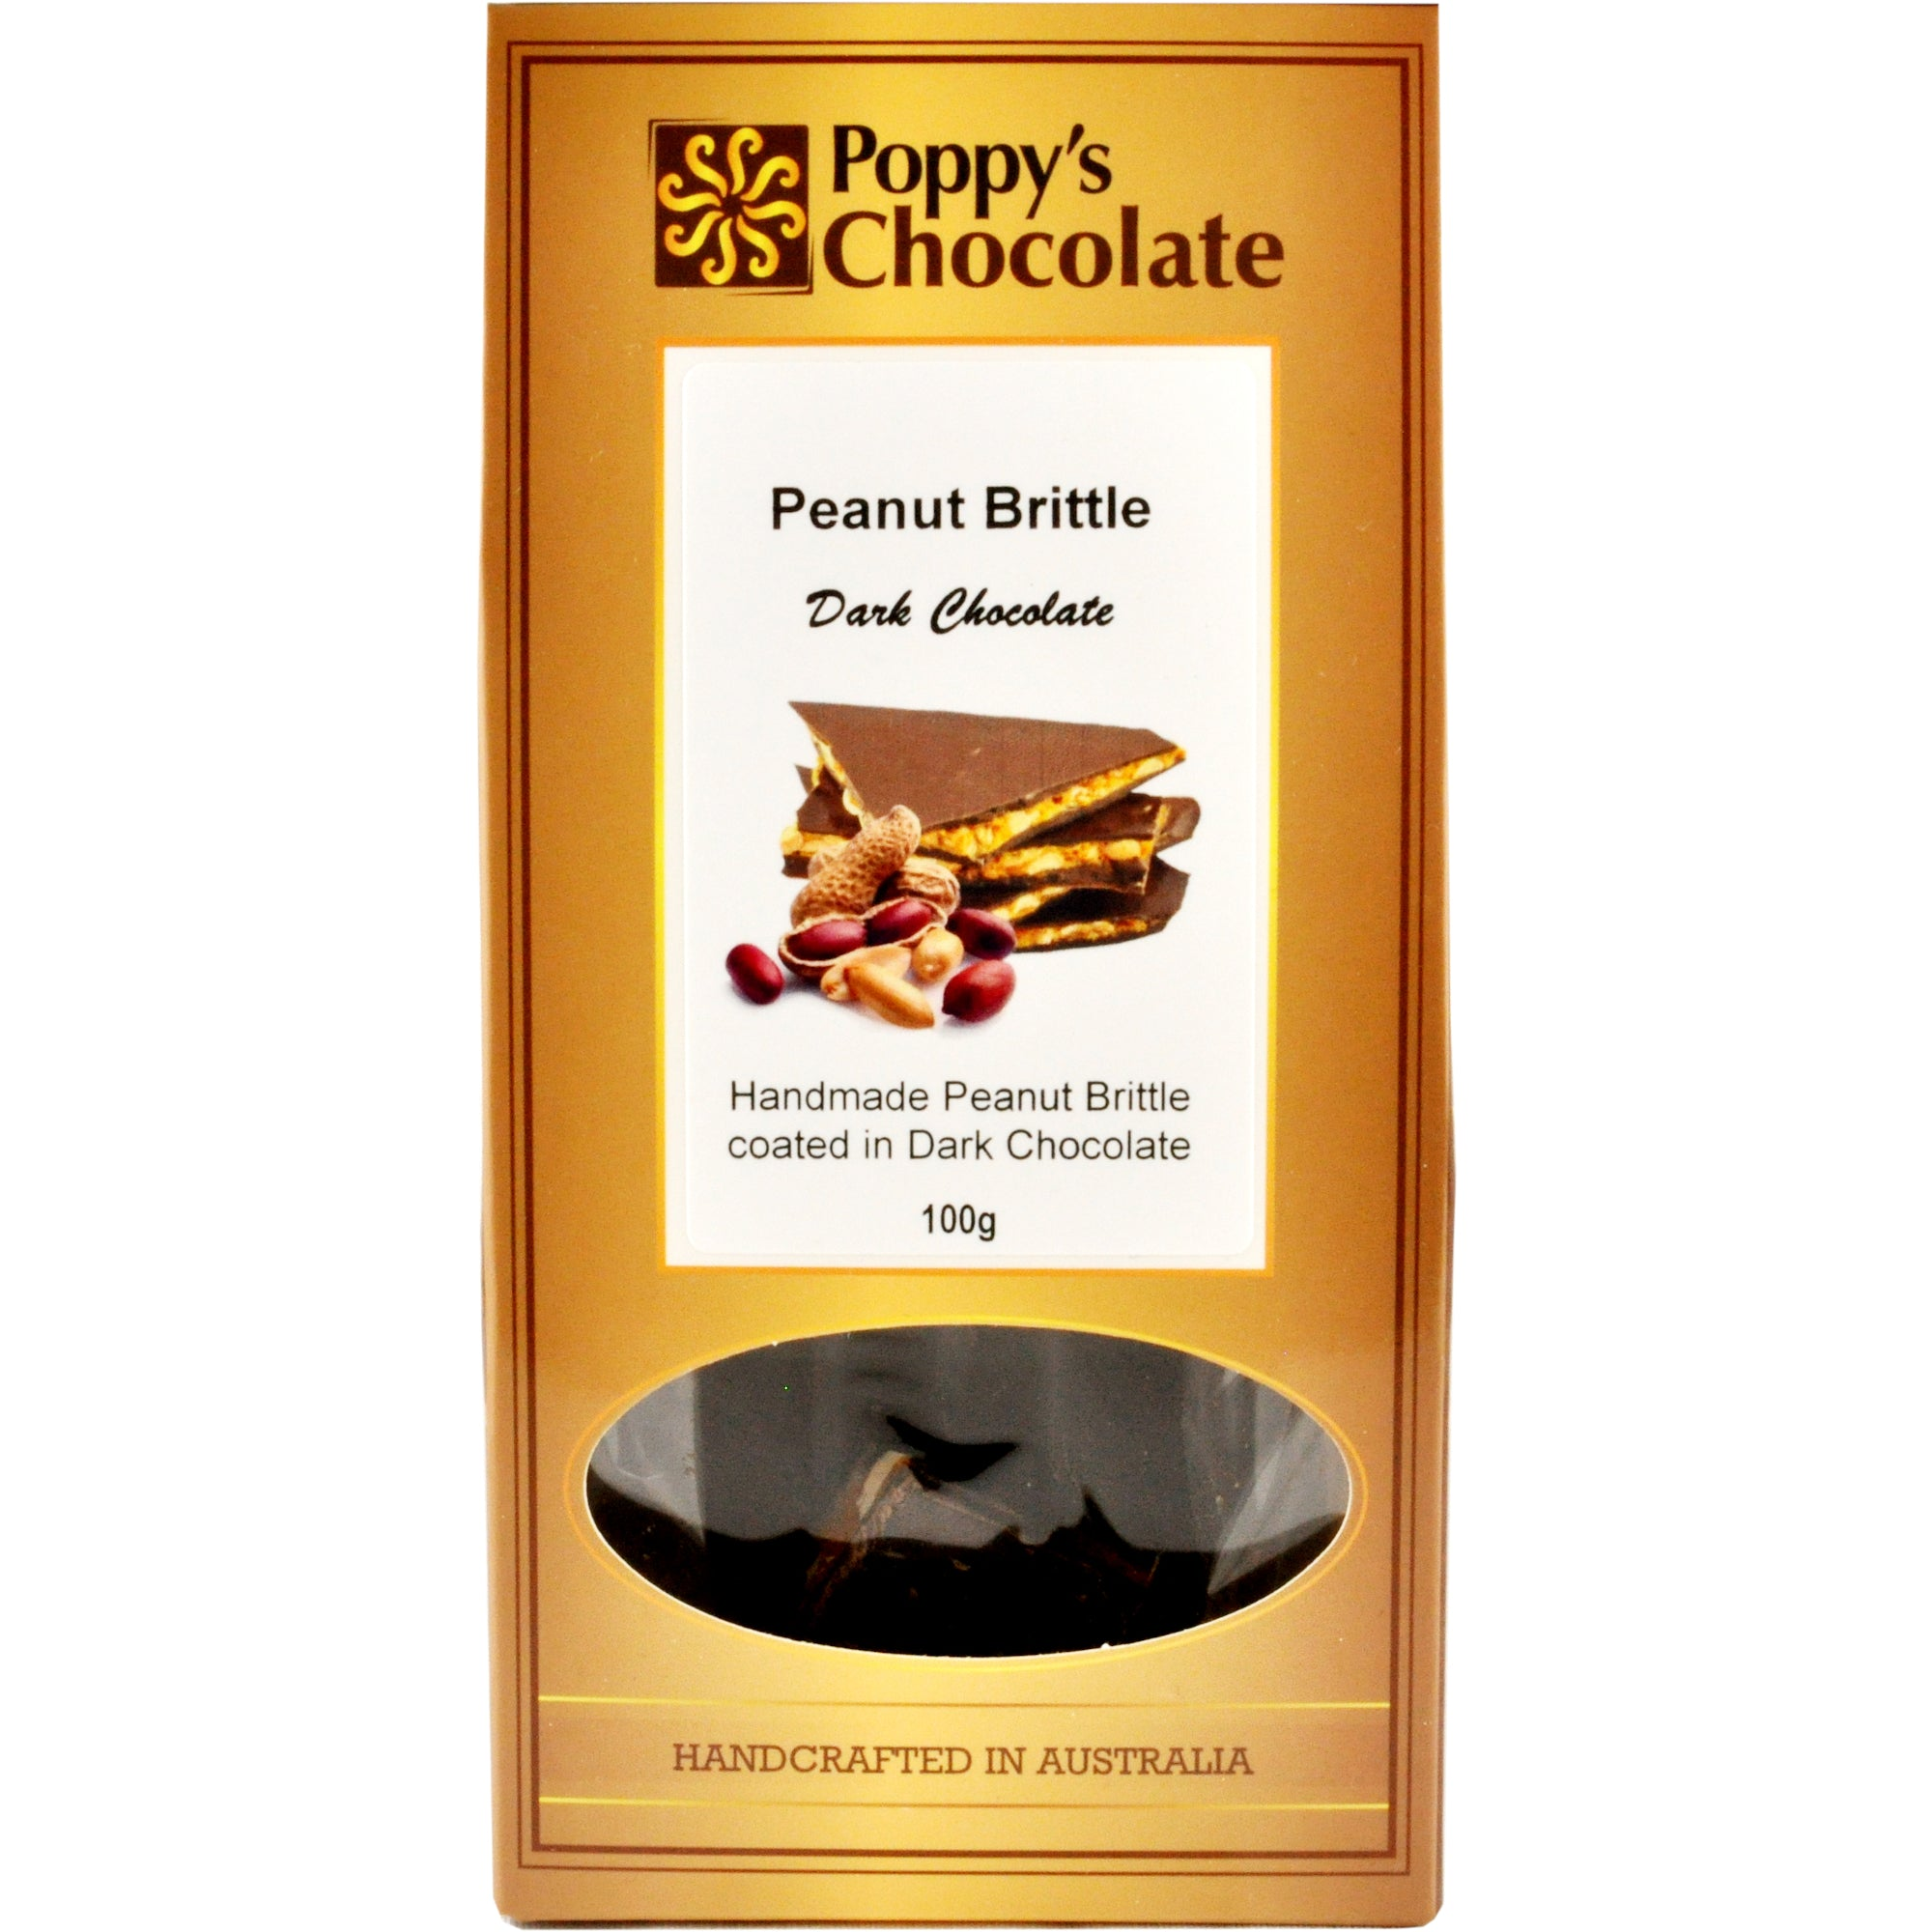 Peanut Brittle coated in Dark Chocolate 100g